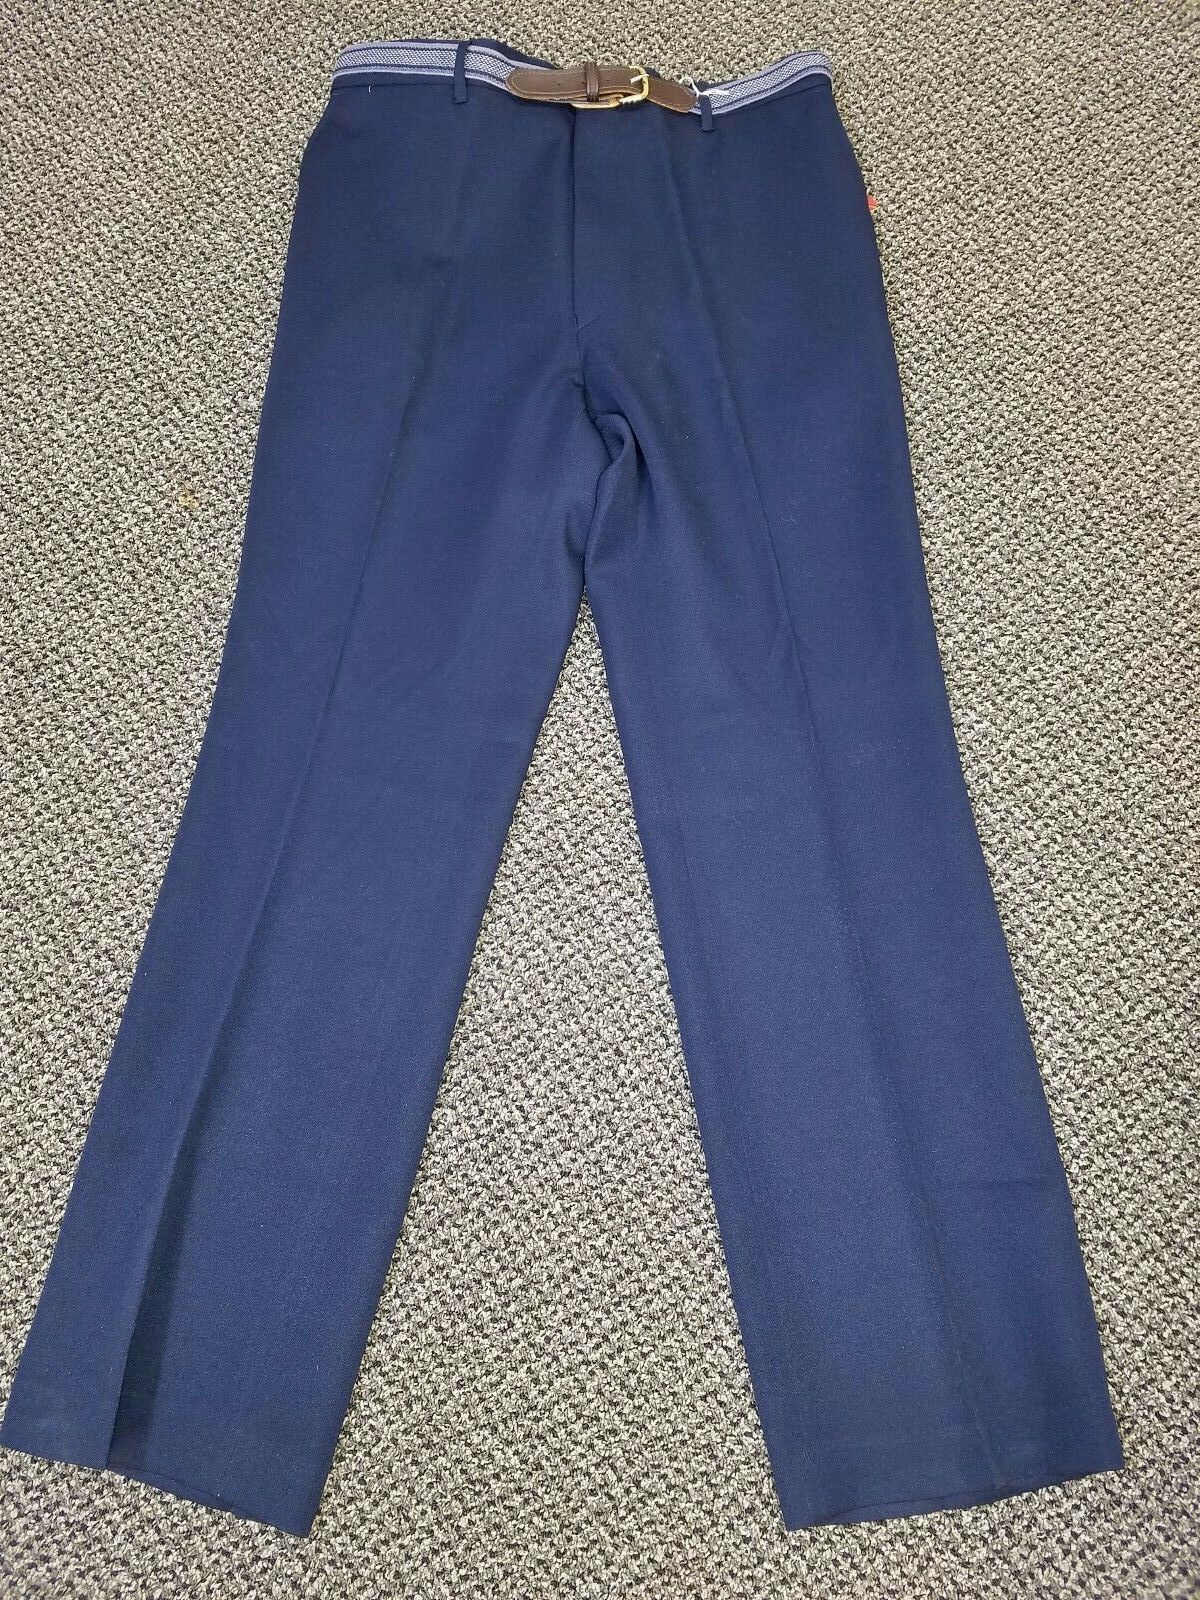 McGregor Men's bluee Dress Pants w Belt Size 38x32--NWT